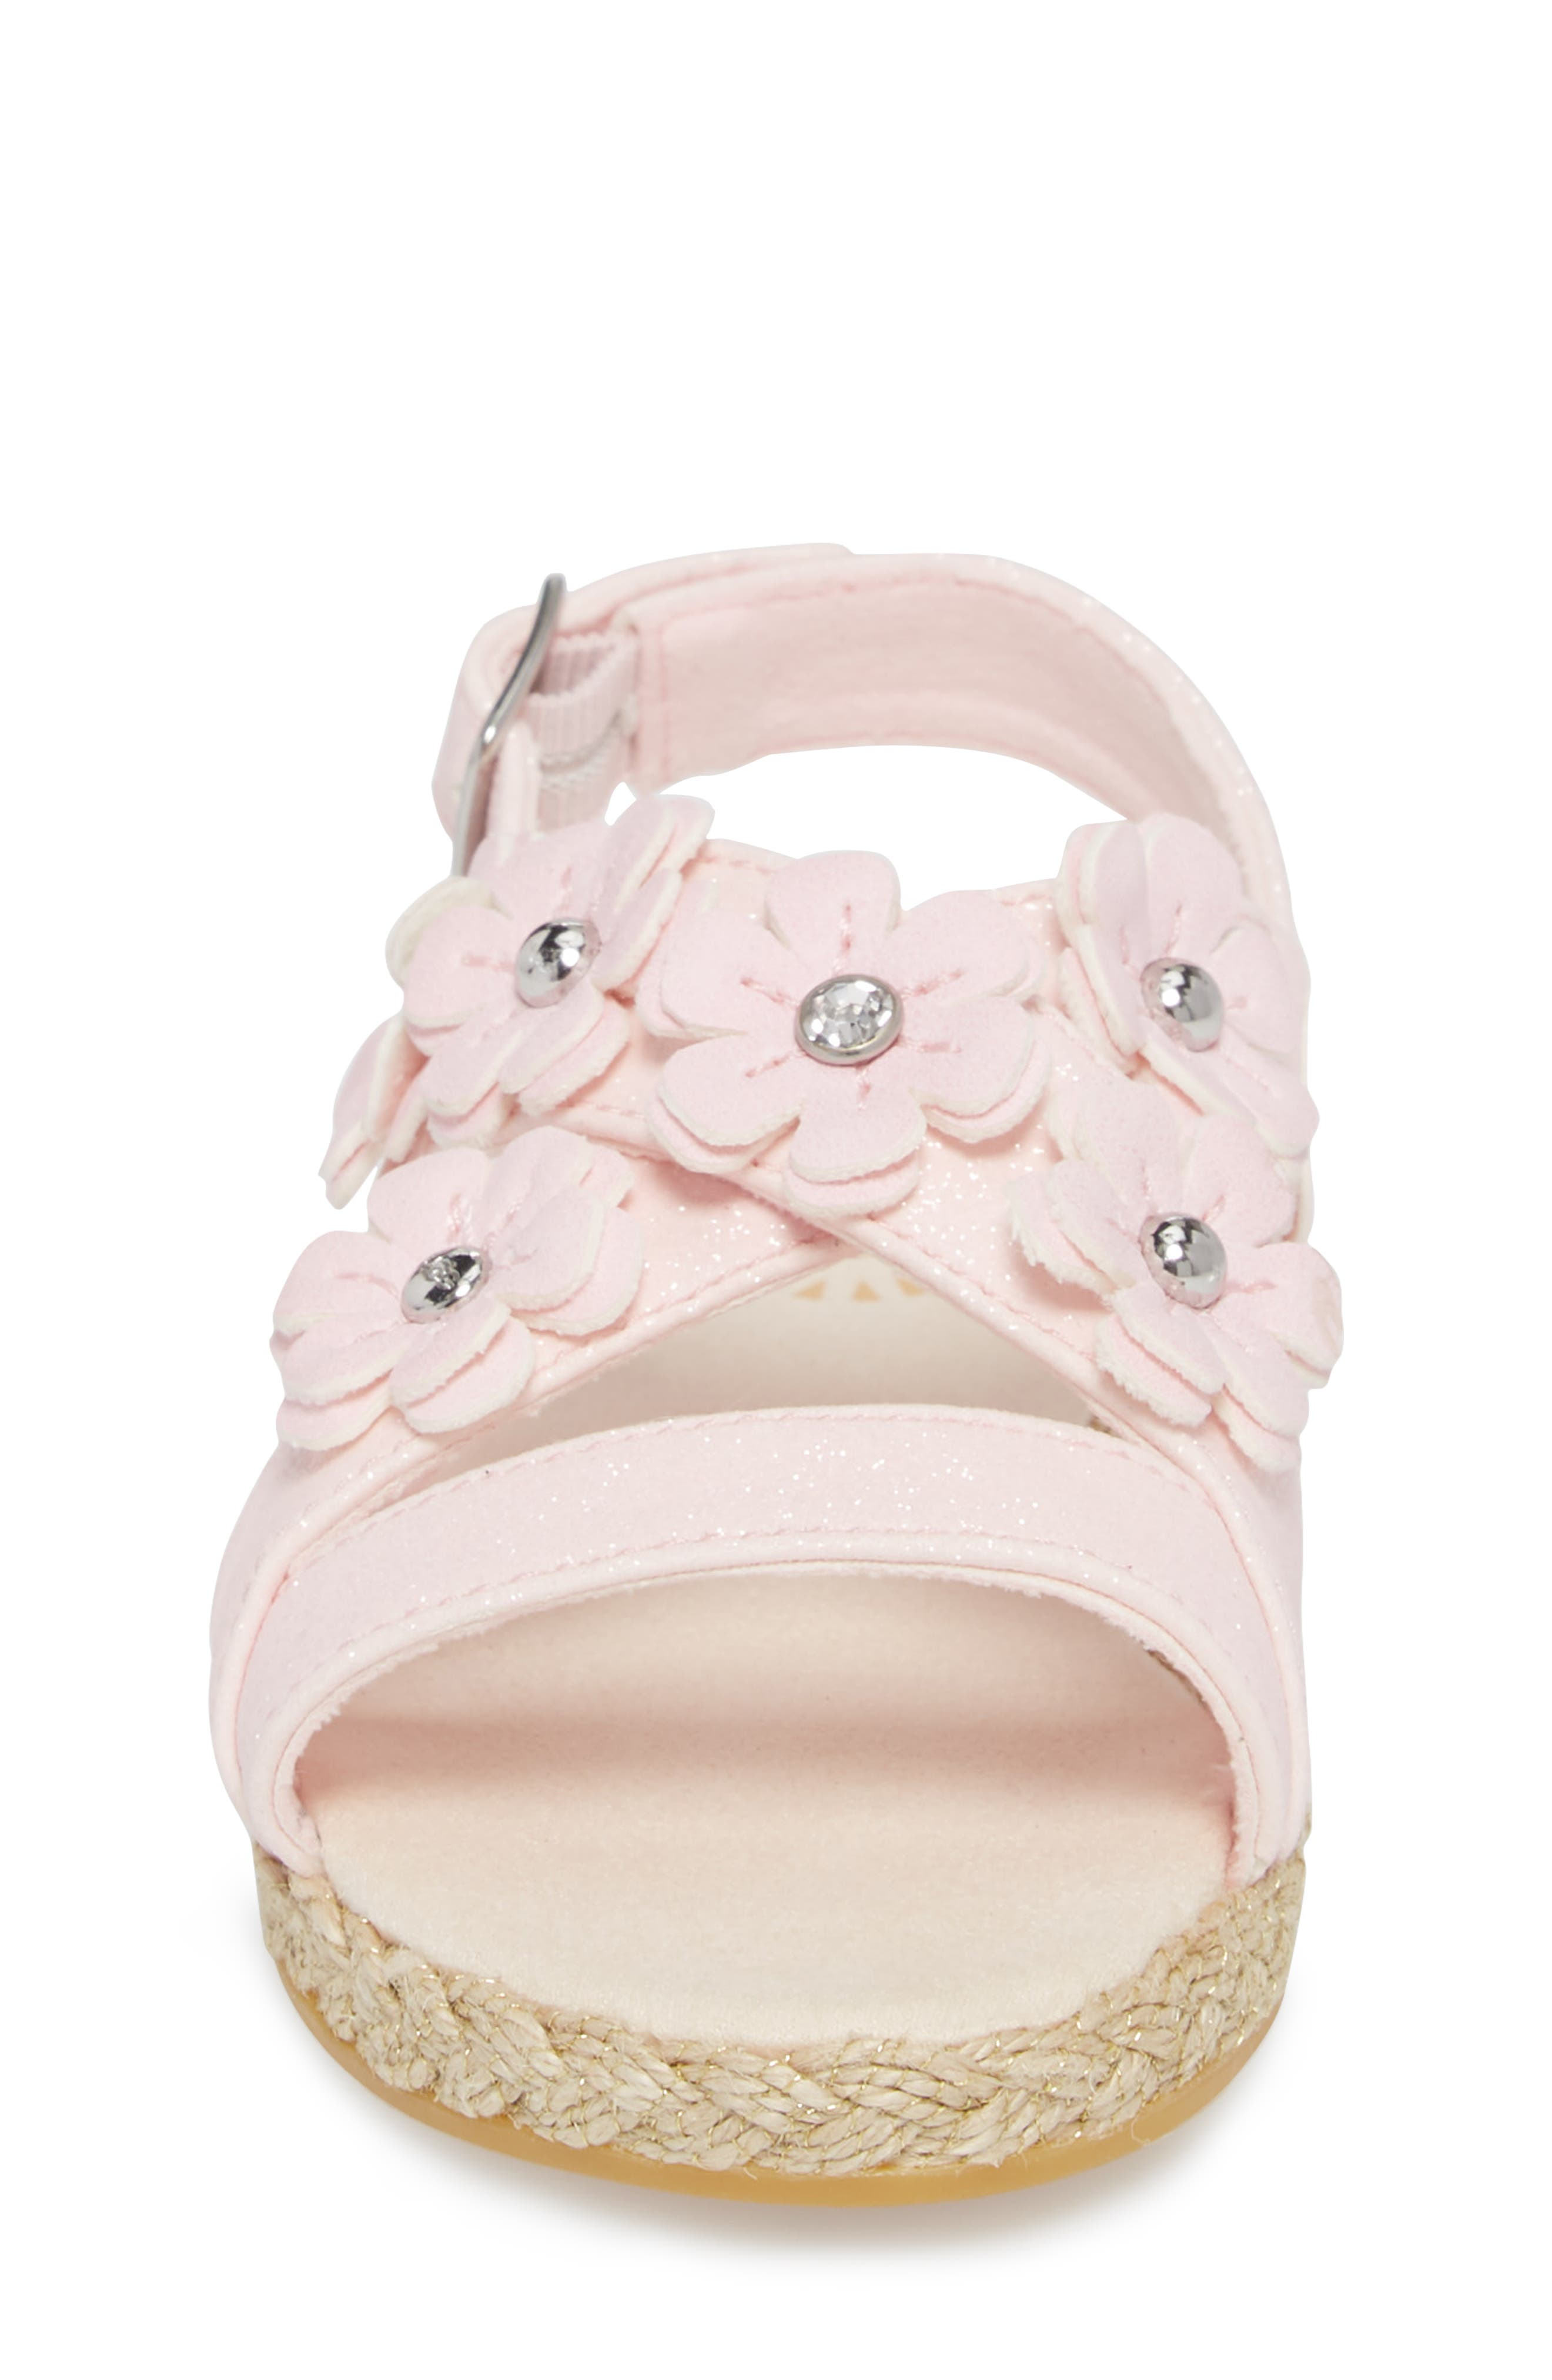 Allairey Sparkles Espadrille Sandal,                             Alternate thumbnail 4, color,                             SEASHELL PINK